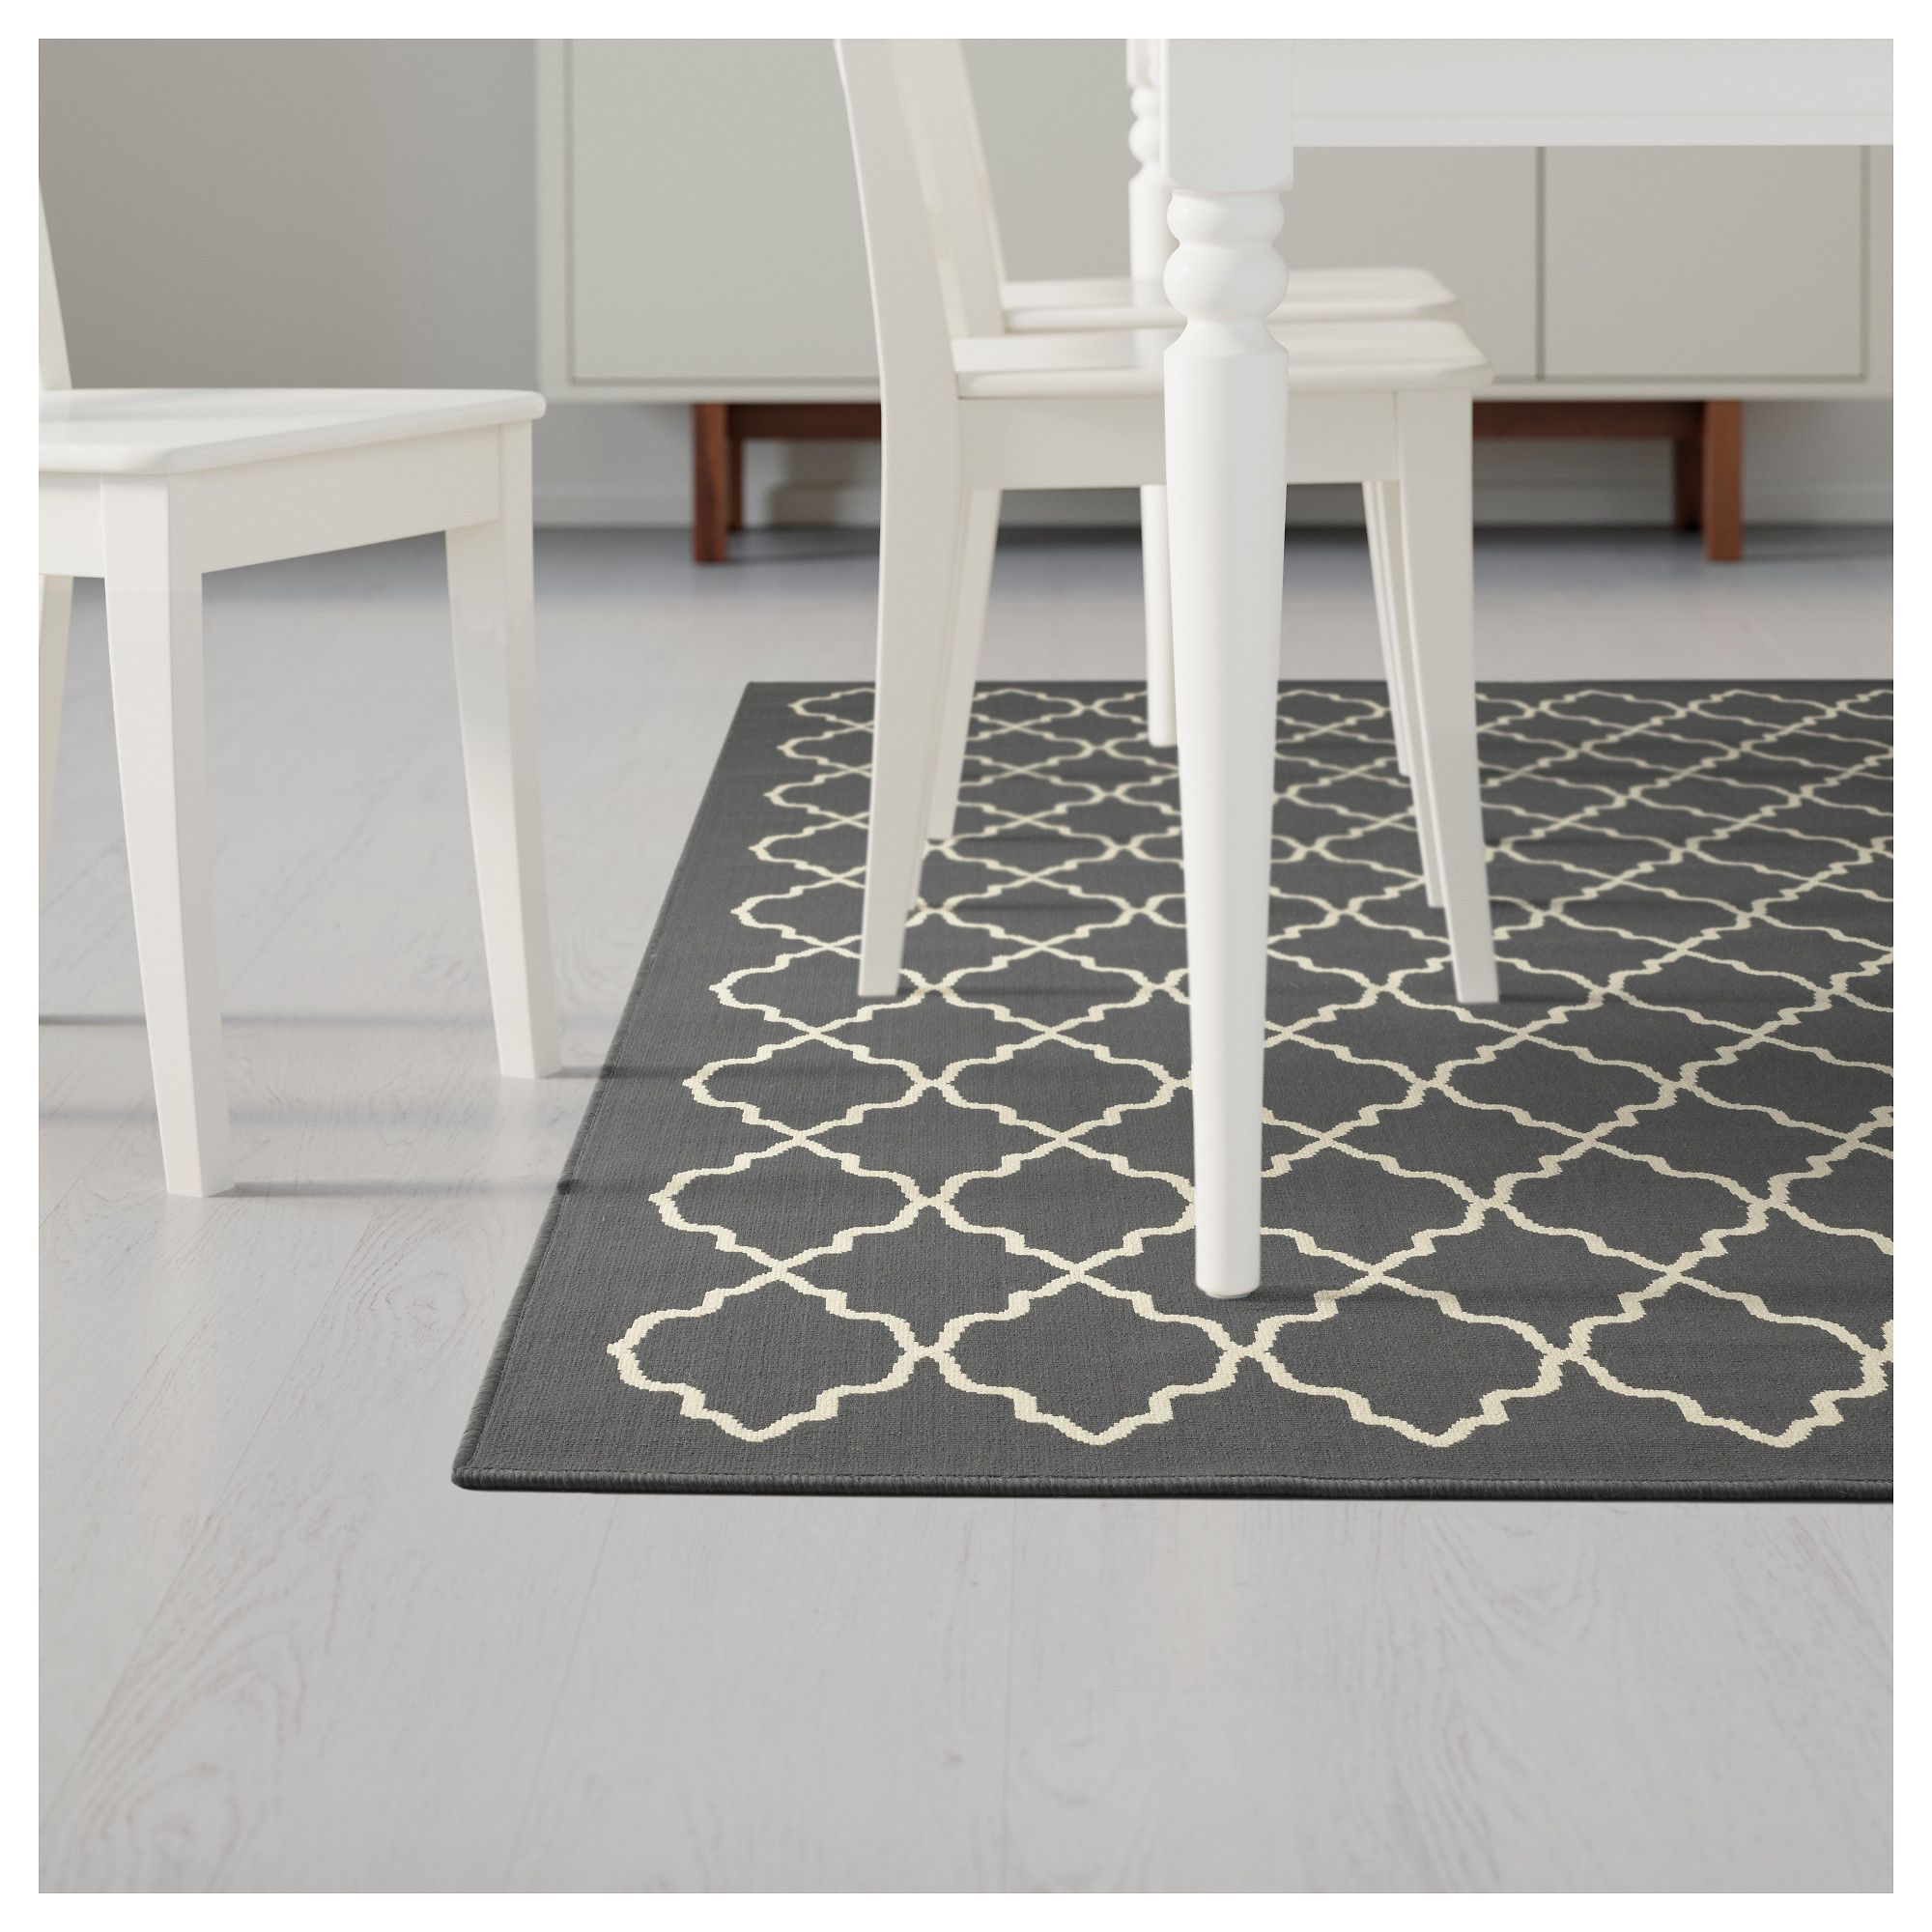 Want To Buy Rugs Simple Guideline Ikea Rugs Ikea Rug